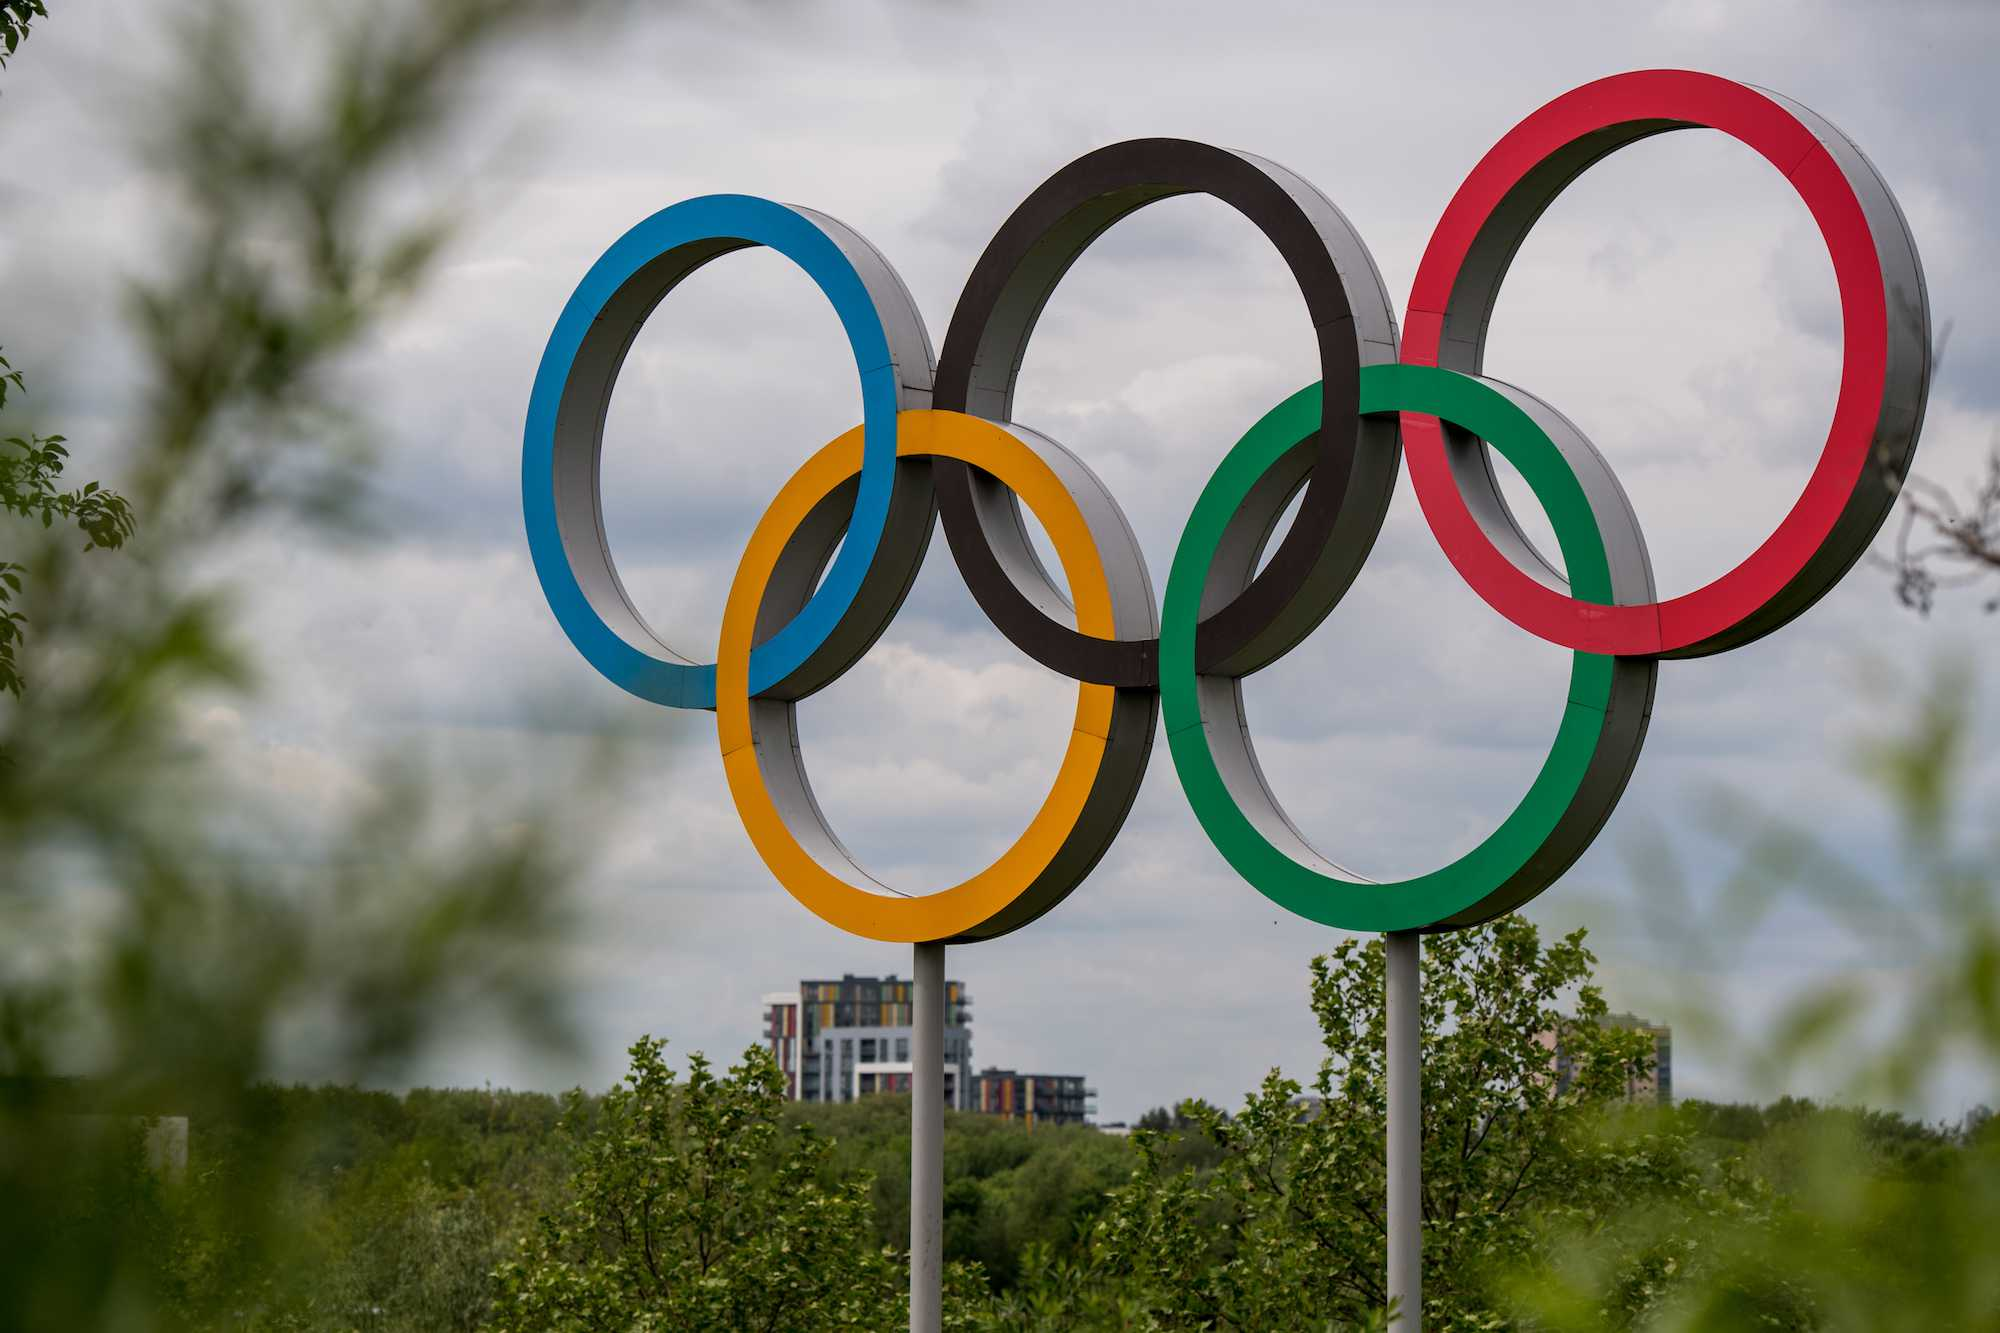 Olympic rings amid landscaping with a building in the background.